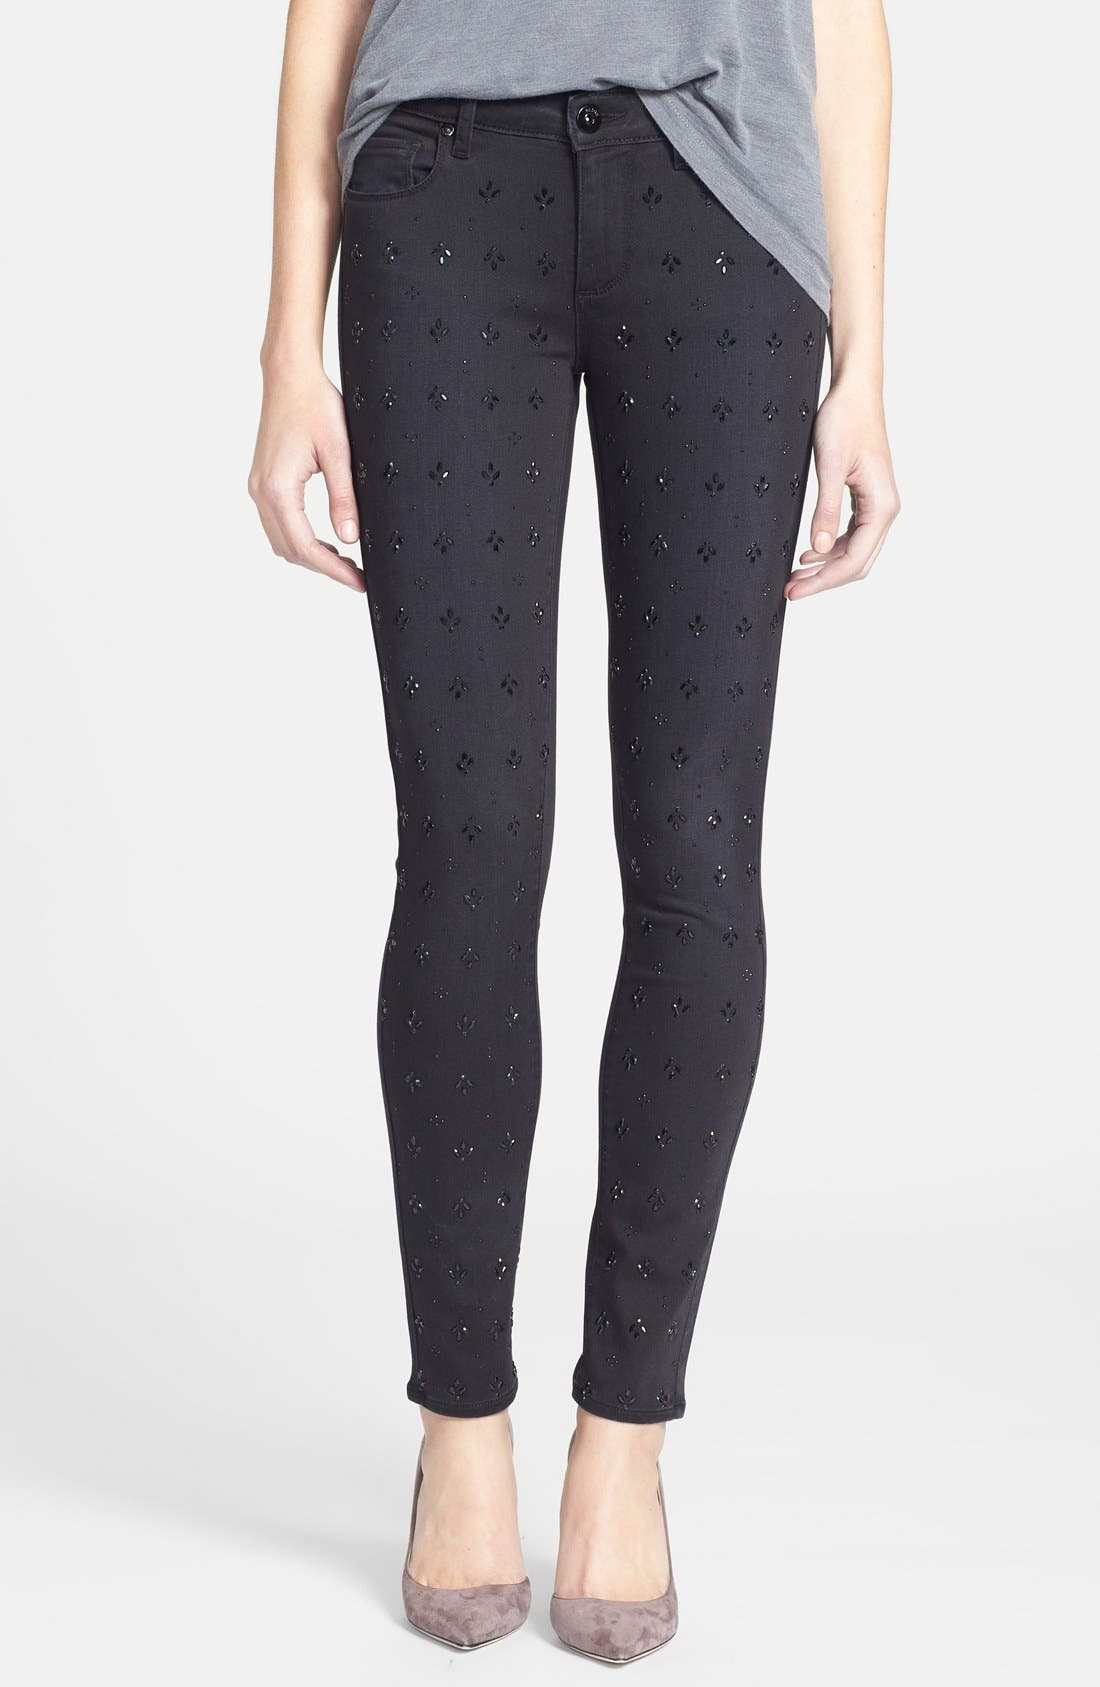 Alternate Image 1 Selected - Paige Denim 'Verdugo' Ultra Skinny Jeans (Cleo Embellished)